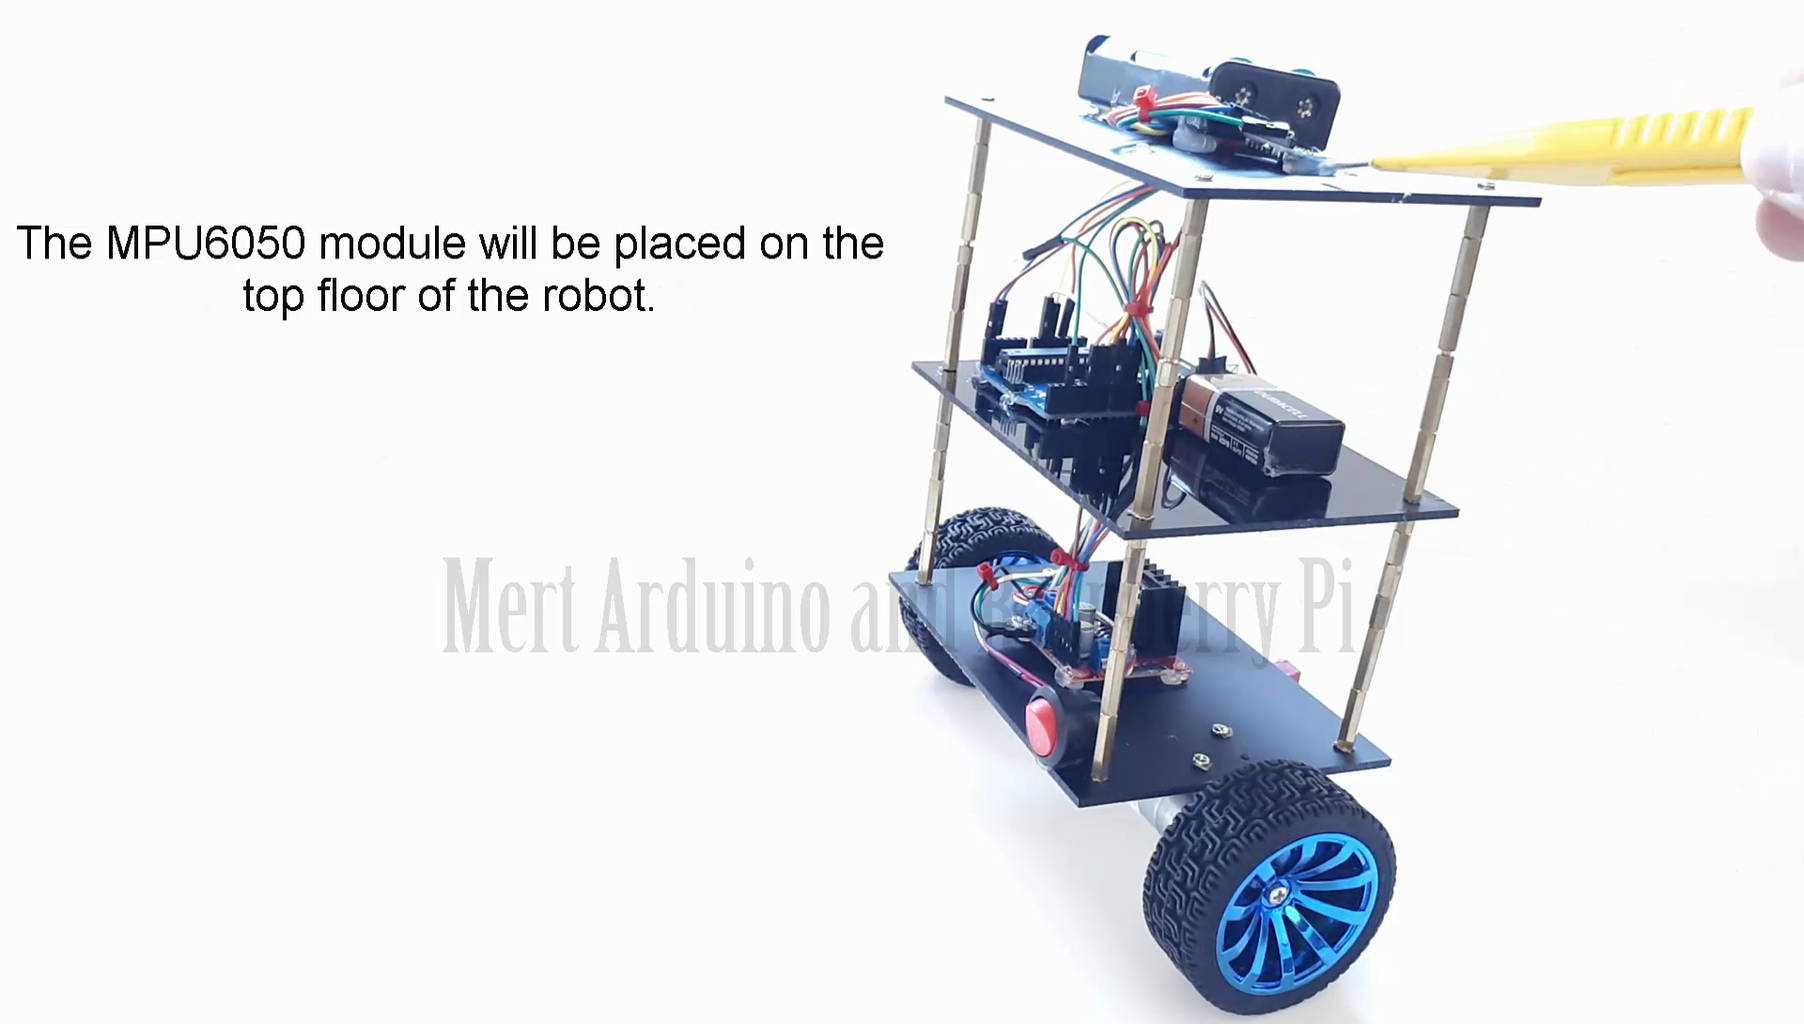 Assembly of the Robot